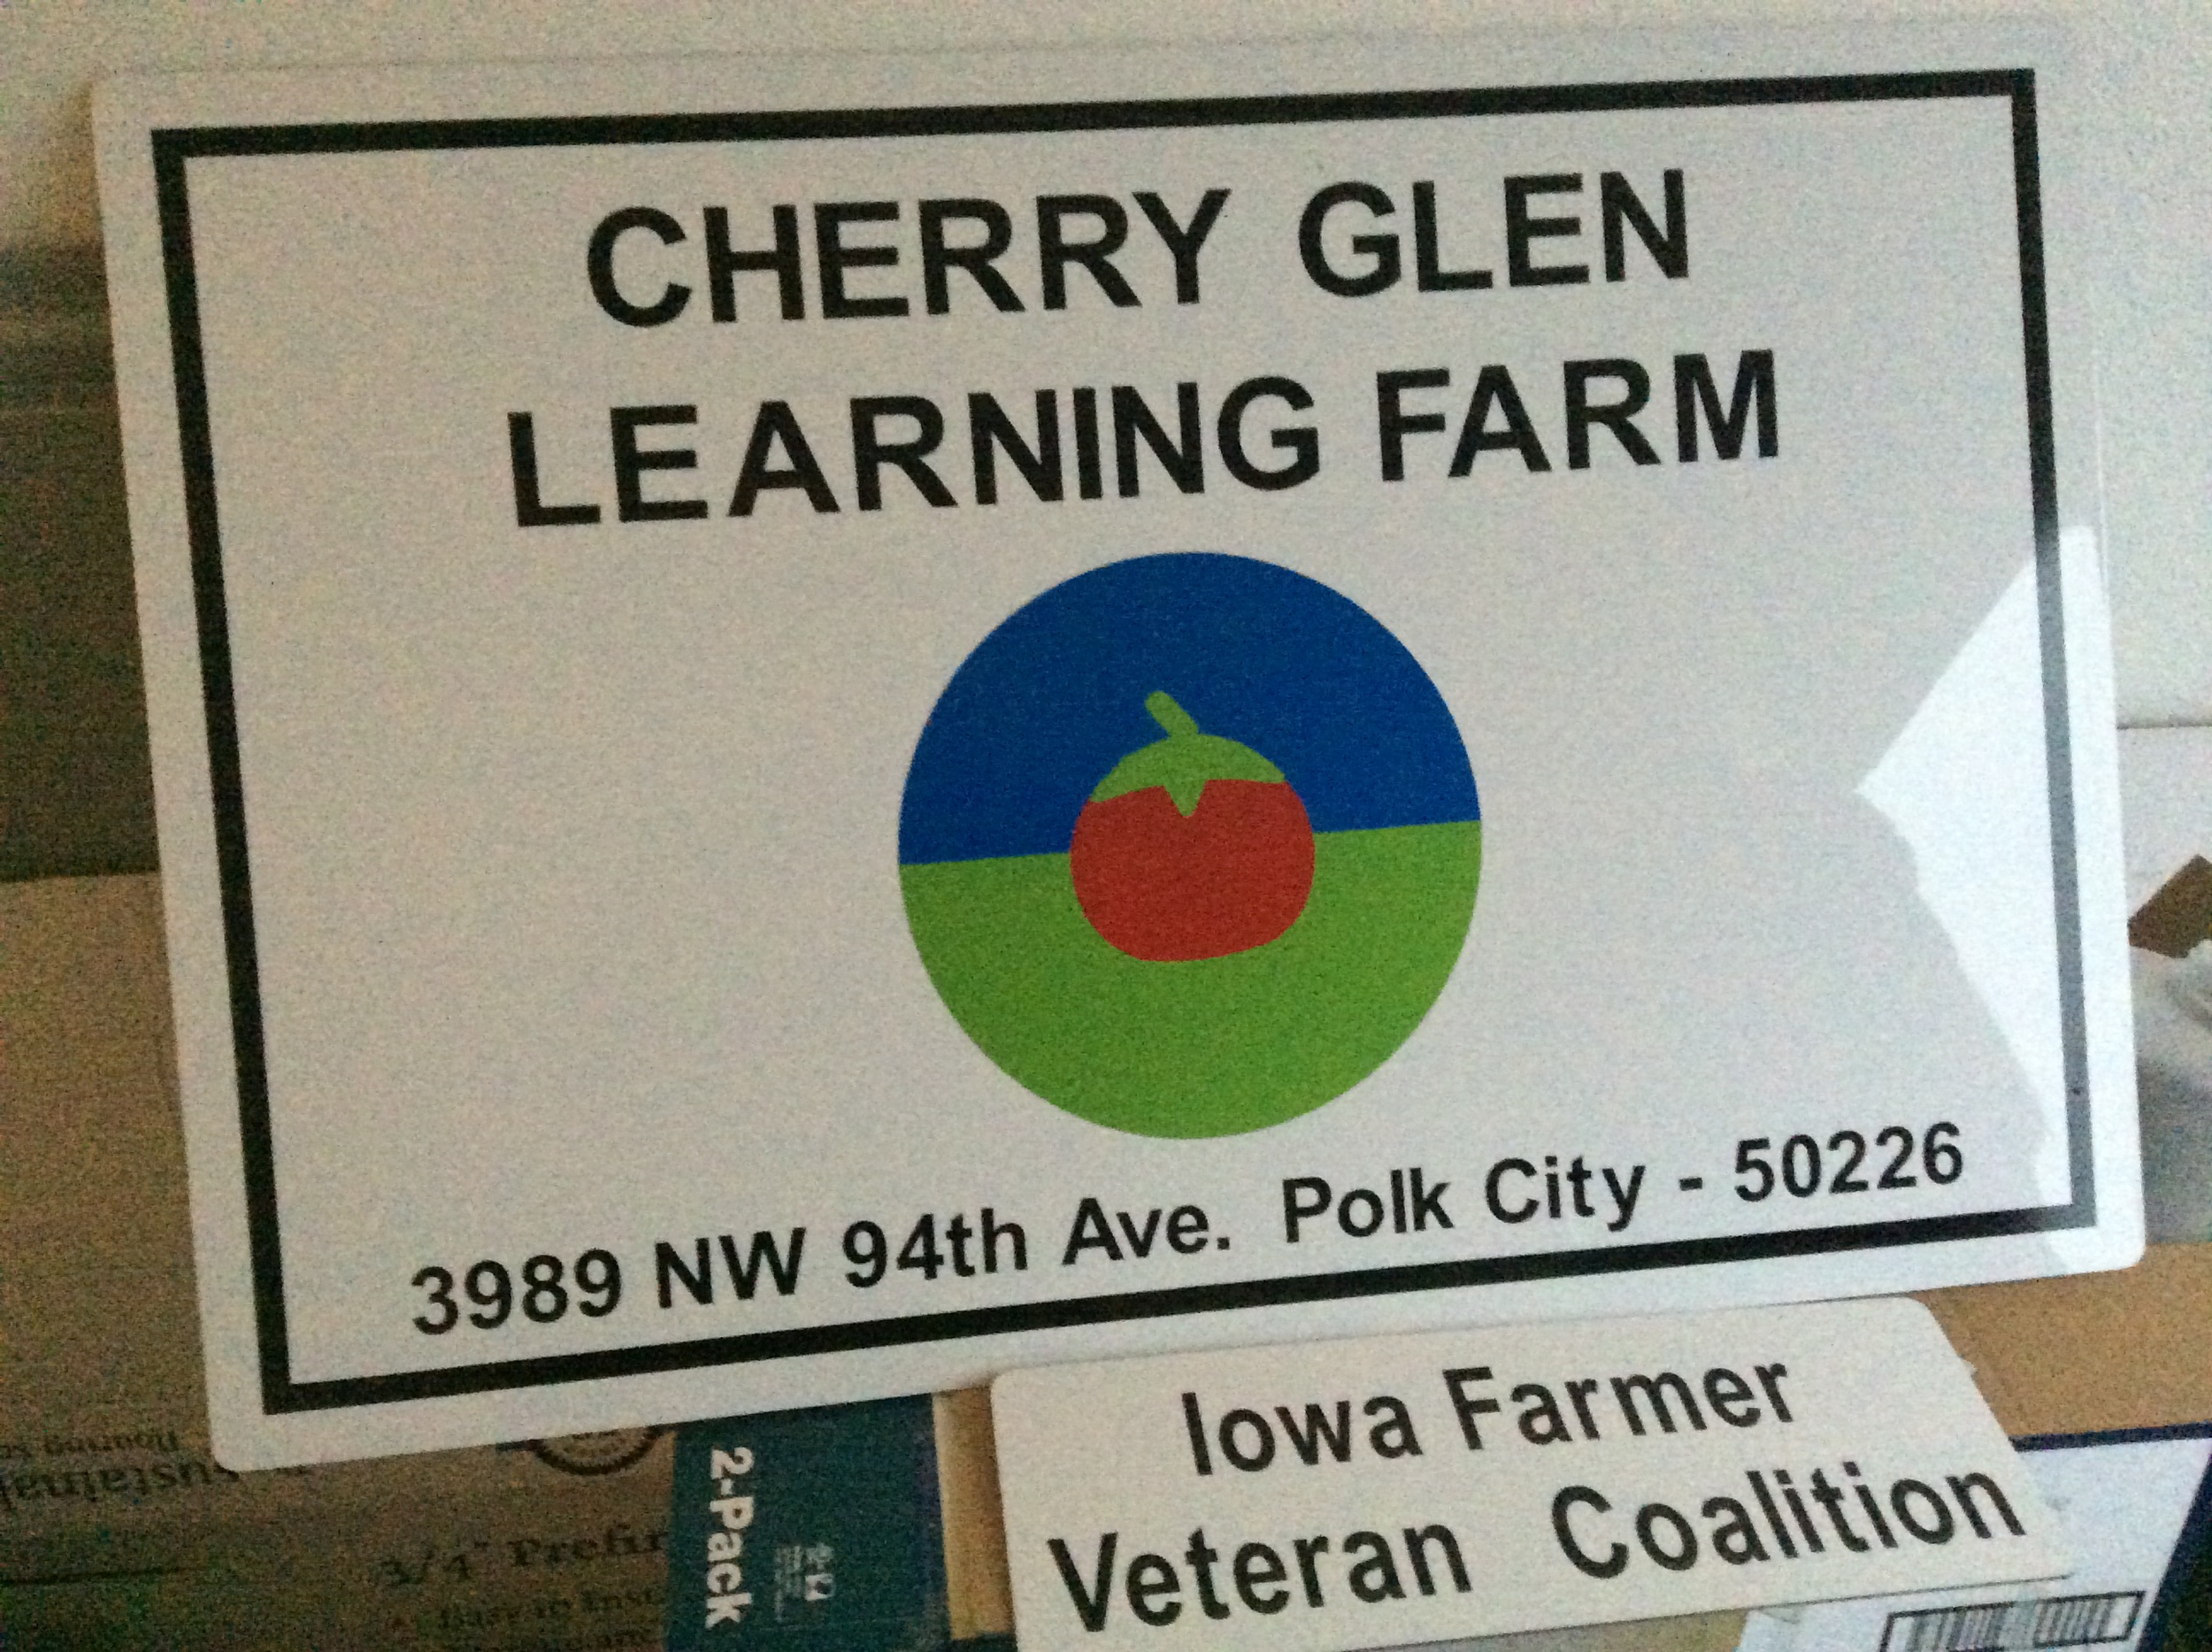 Ray has been working with collaborators to incorporate his new learning farm as a nonprofit organization.